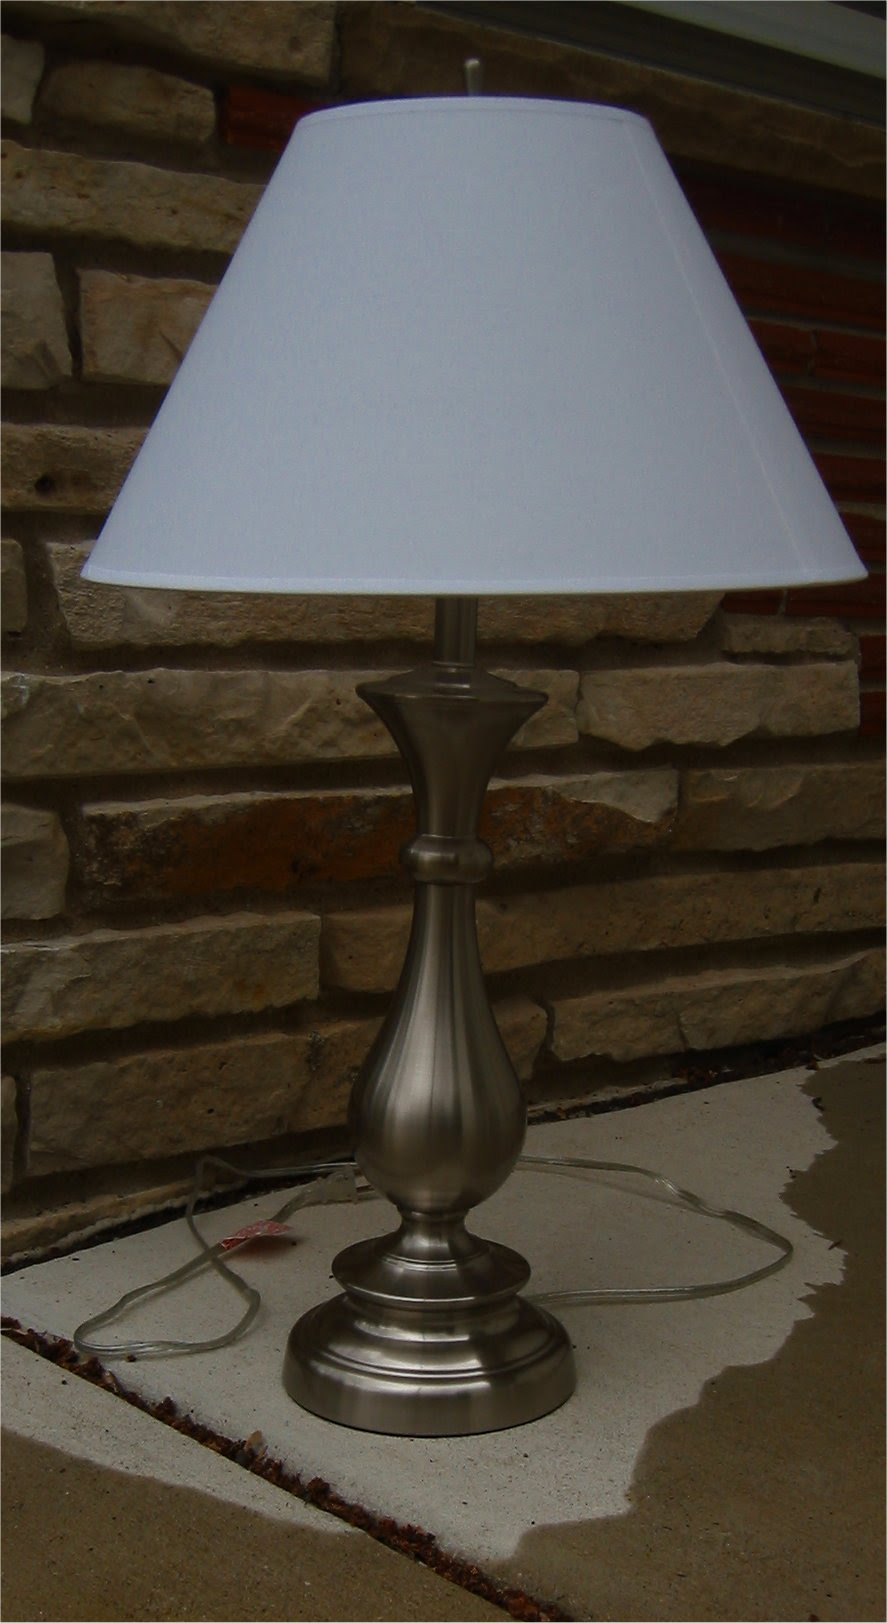 silver lamp soulamp made in china - soul amp